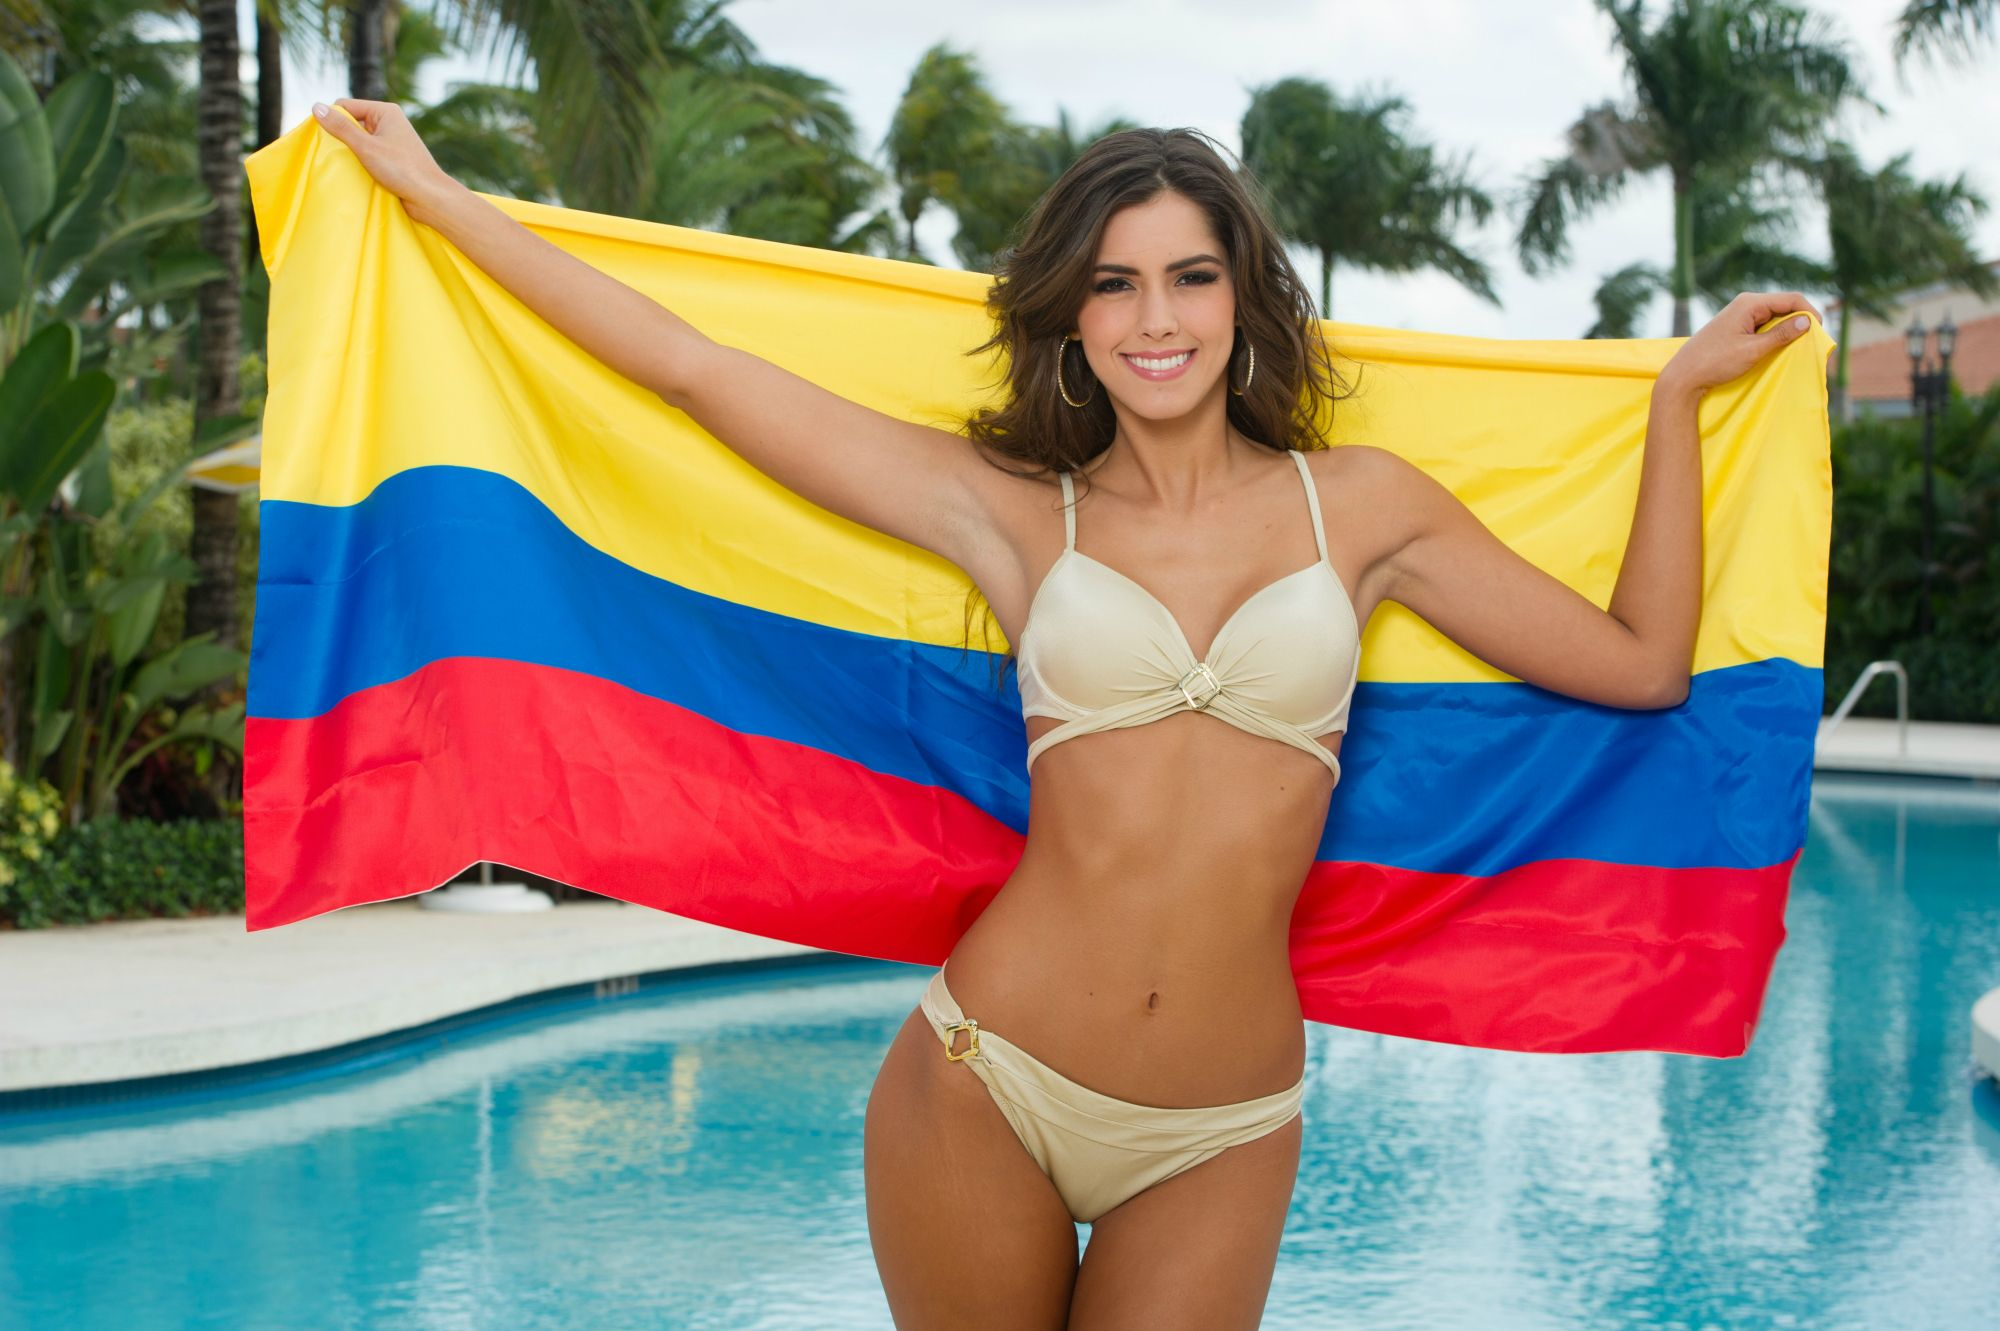 The 10 Top Performing Countries in International Beauty Pageants